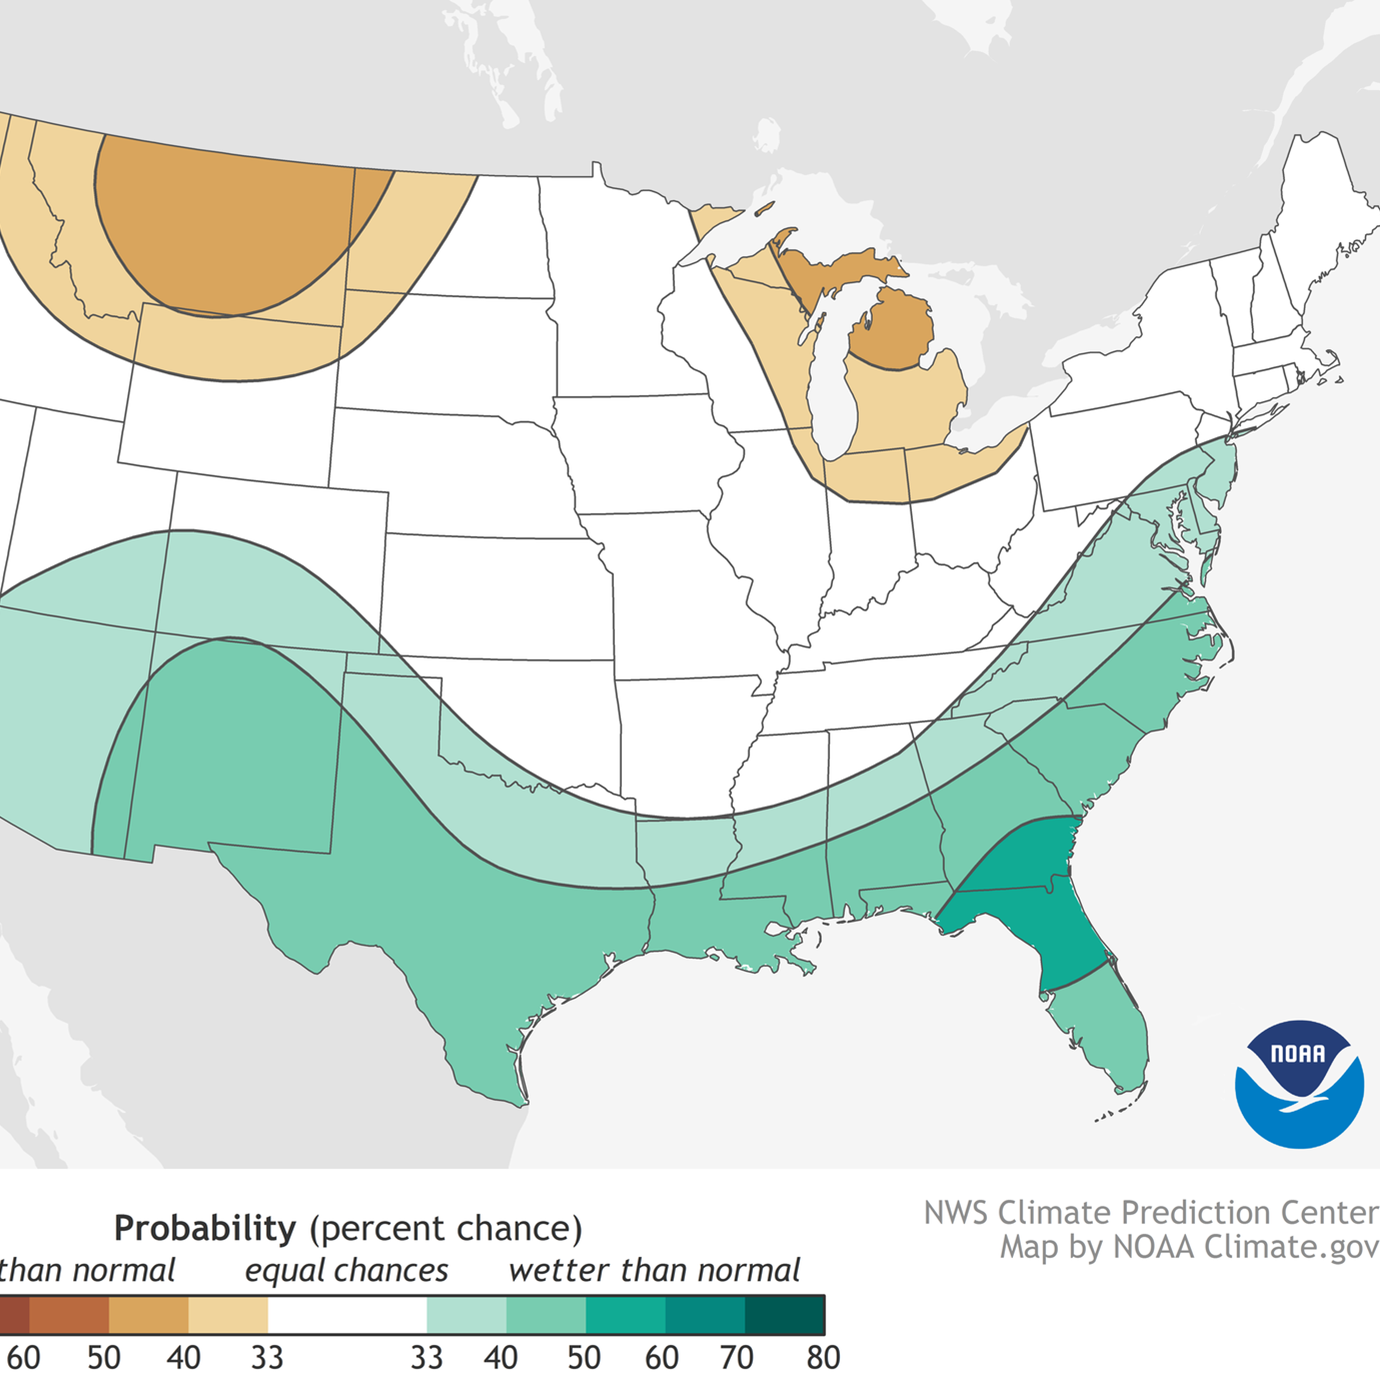 Meteorologists predict wetter-than-normal winter in the Southeast; temperatures uncertain